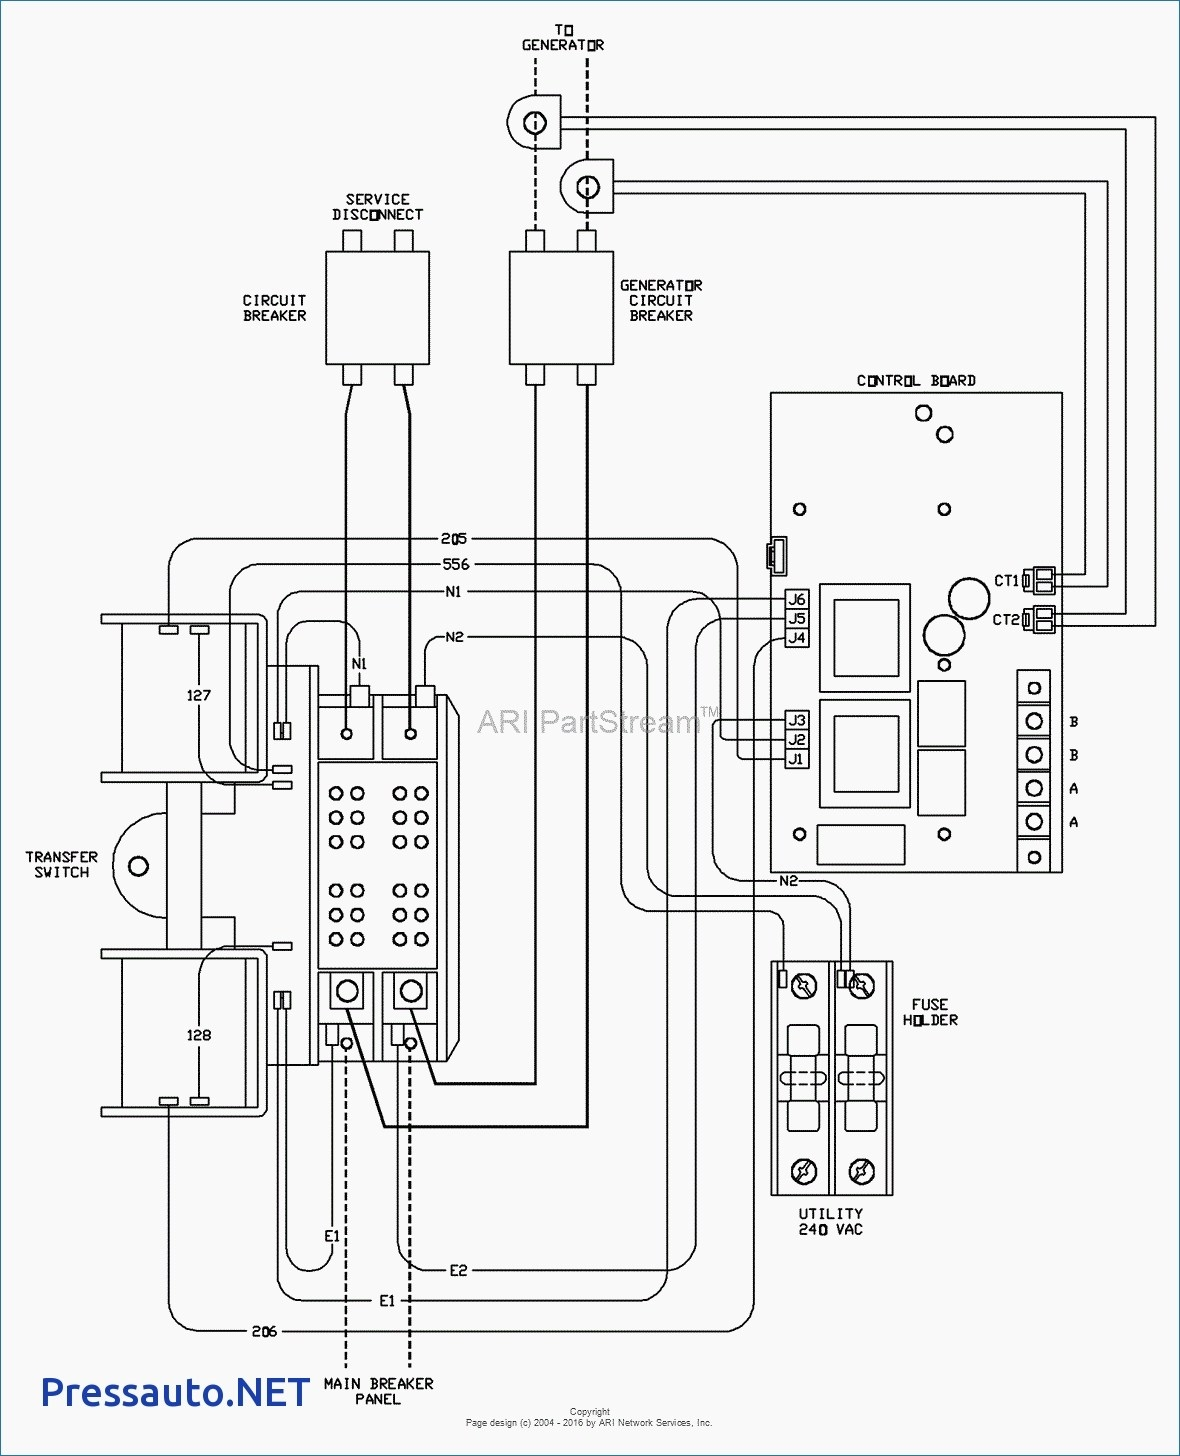 transfer switch wiring diagram Collection-Whole House Transfer Switch Wiring Diagram Beautiful Generator Manual Transfer Switch Wiring Diagram 13-e